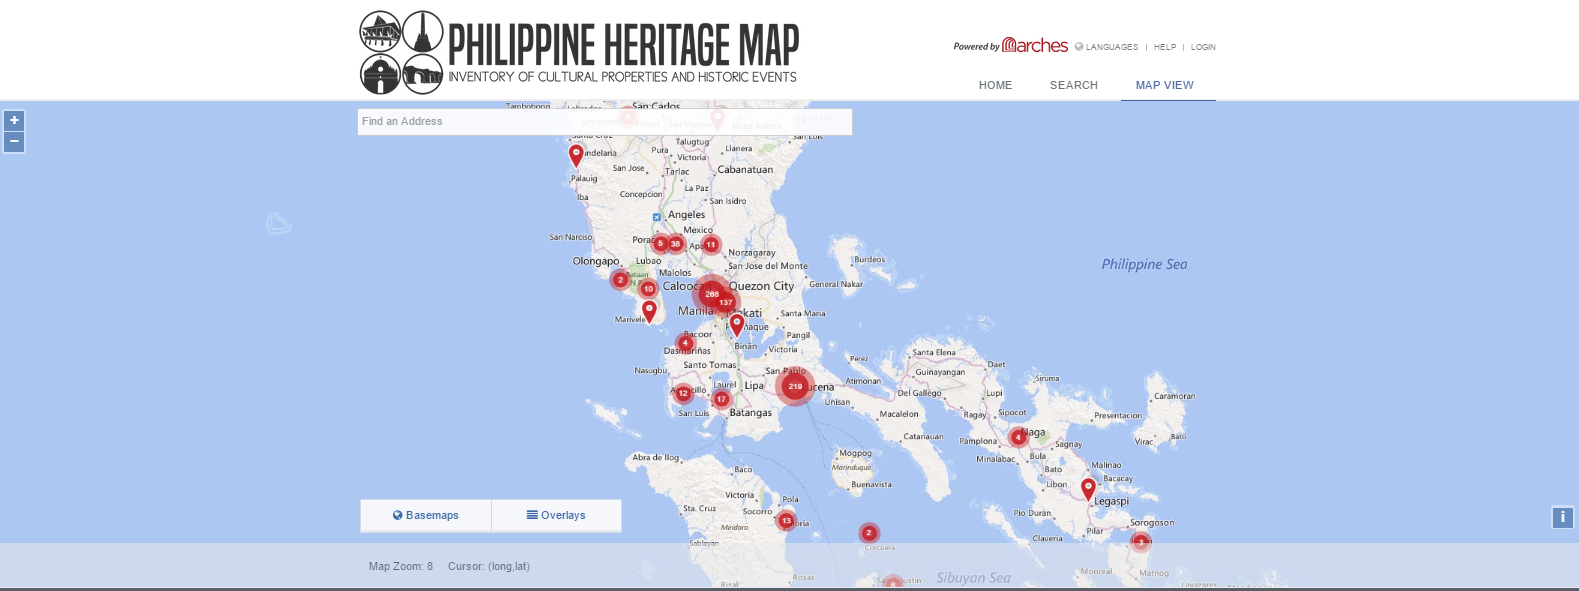 The Philippine Heritage Map launched | ASEF culture360 on france map, zimbabwe map, spain map, portugal map, syria map, california map, zambia map, japan map, senegal map, india map, nigeria map, luzon map, taiwan map, puerto rico map, ukraine map, china map, vietnam map, mexico map, australia map, sudan map, peru map, south pacific map, switzerland map, sweden map, rwanda map, cagayan de oro map, poland map, mindanao map, asia map, cuba map, togo map, korea map, thailand map, saudi arabia map, south america map, caribbean map, dominican republic map, yemen map, turkey map, far east map,